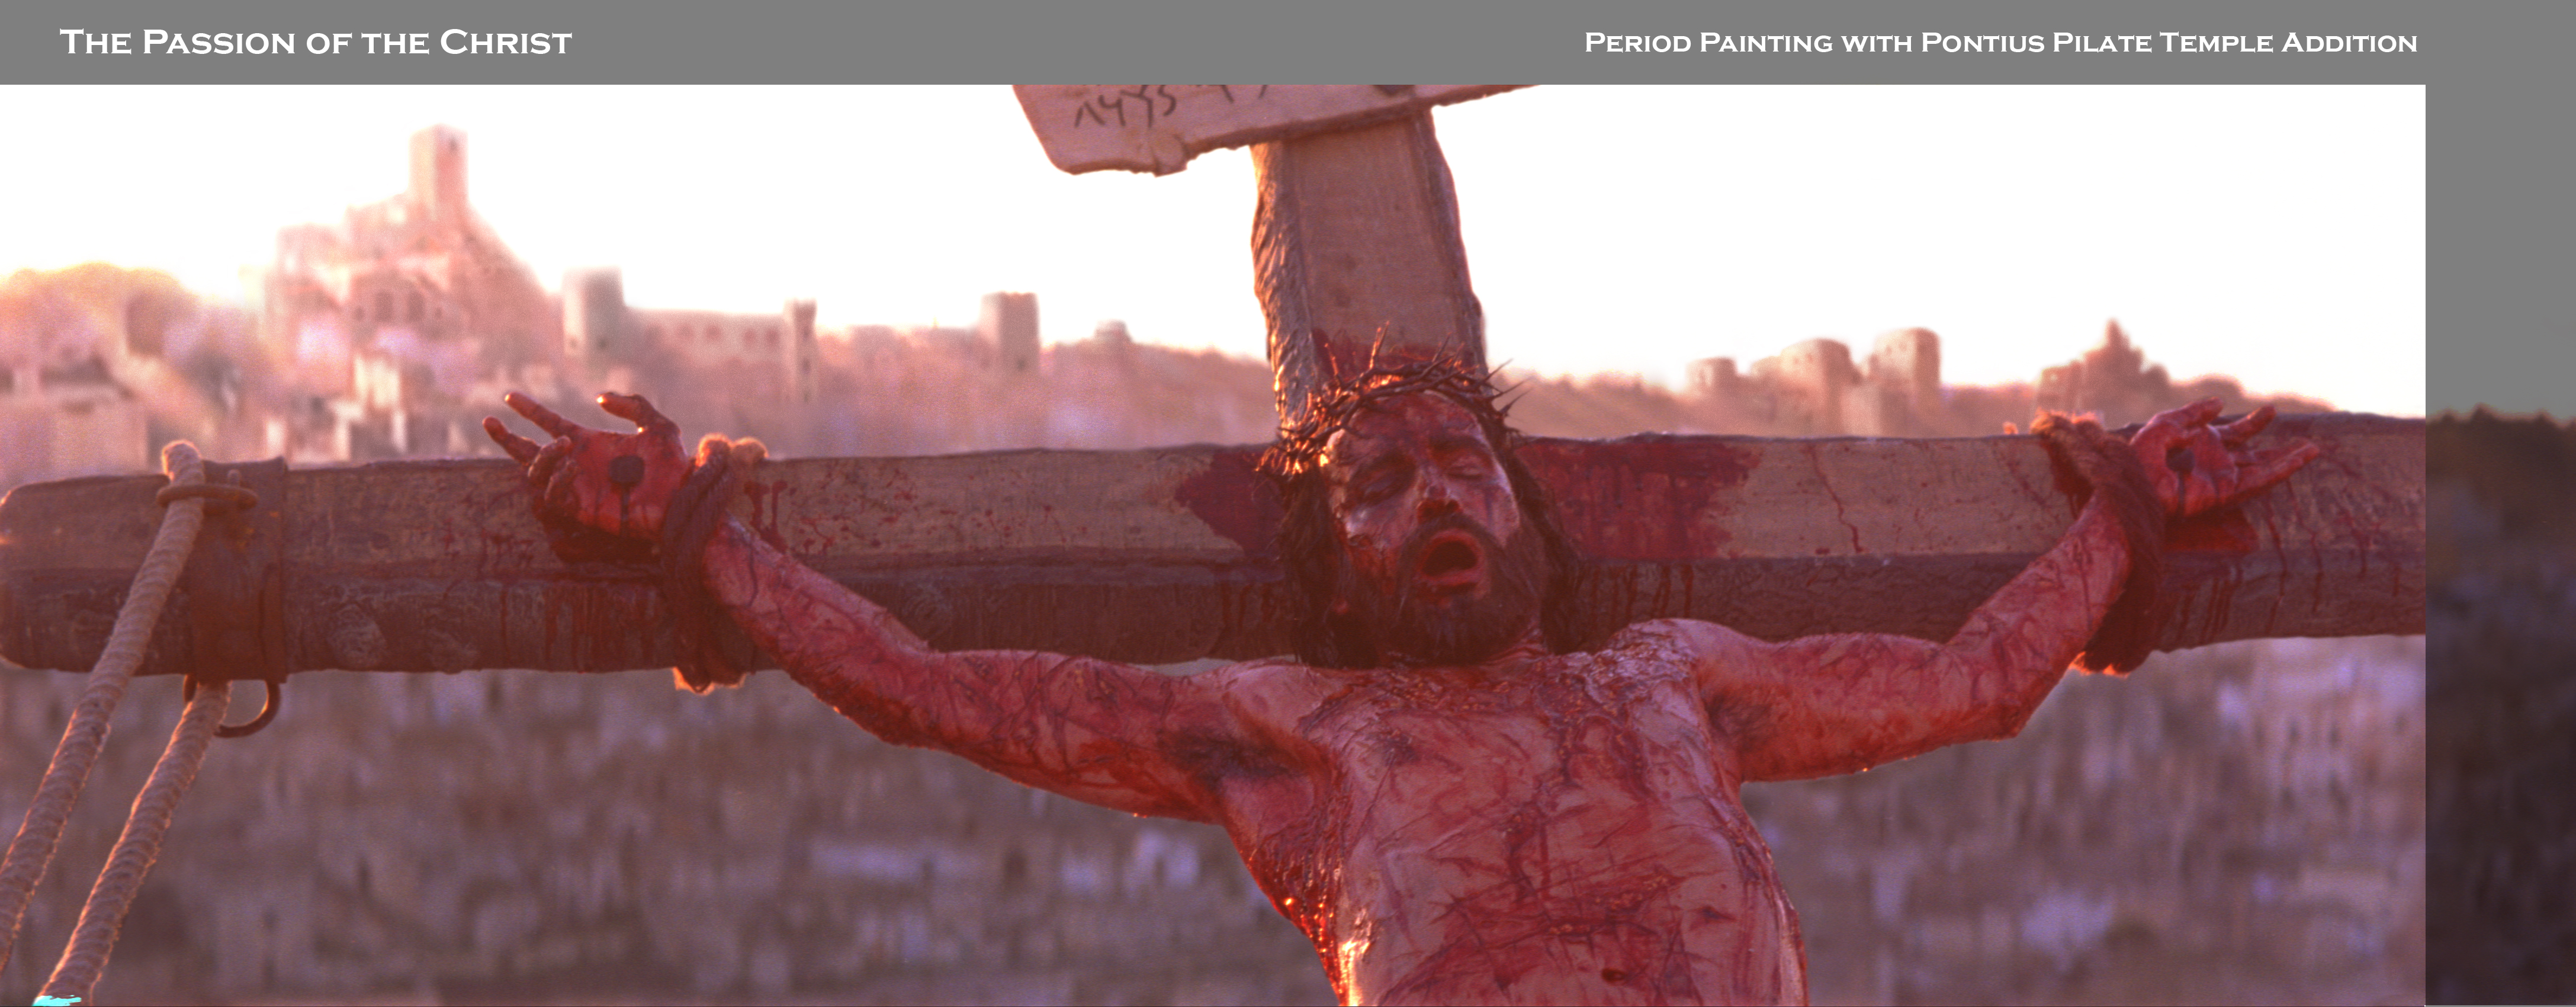 Matte Painting for Passion of the Christ